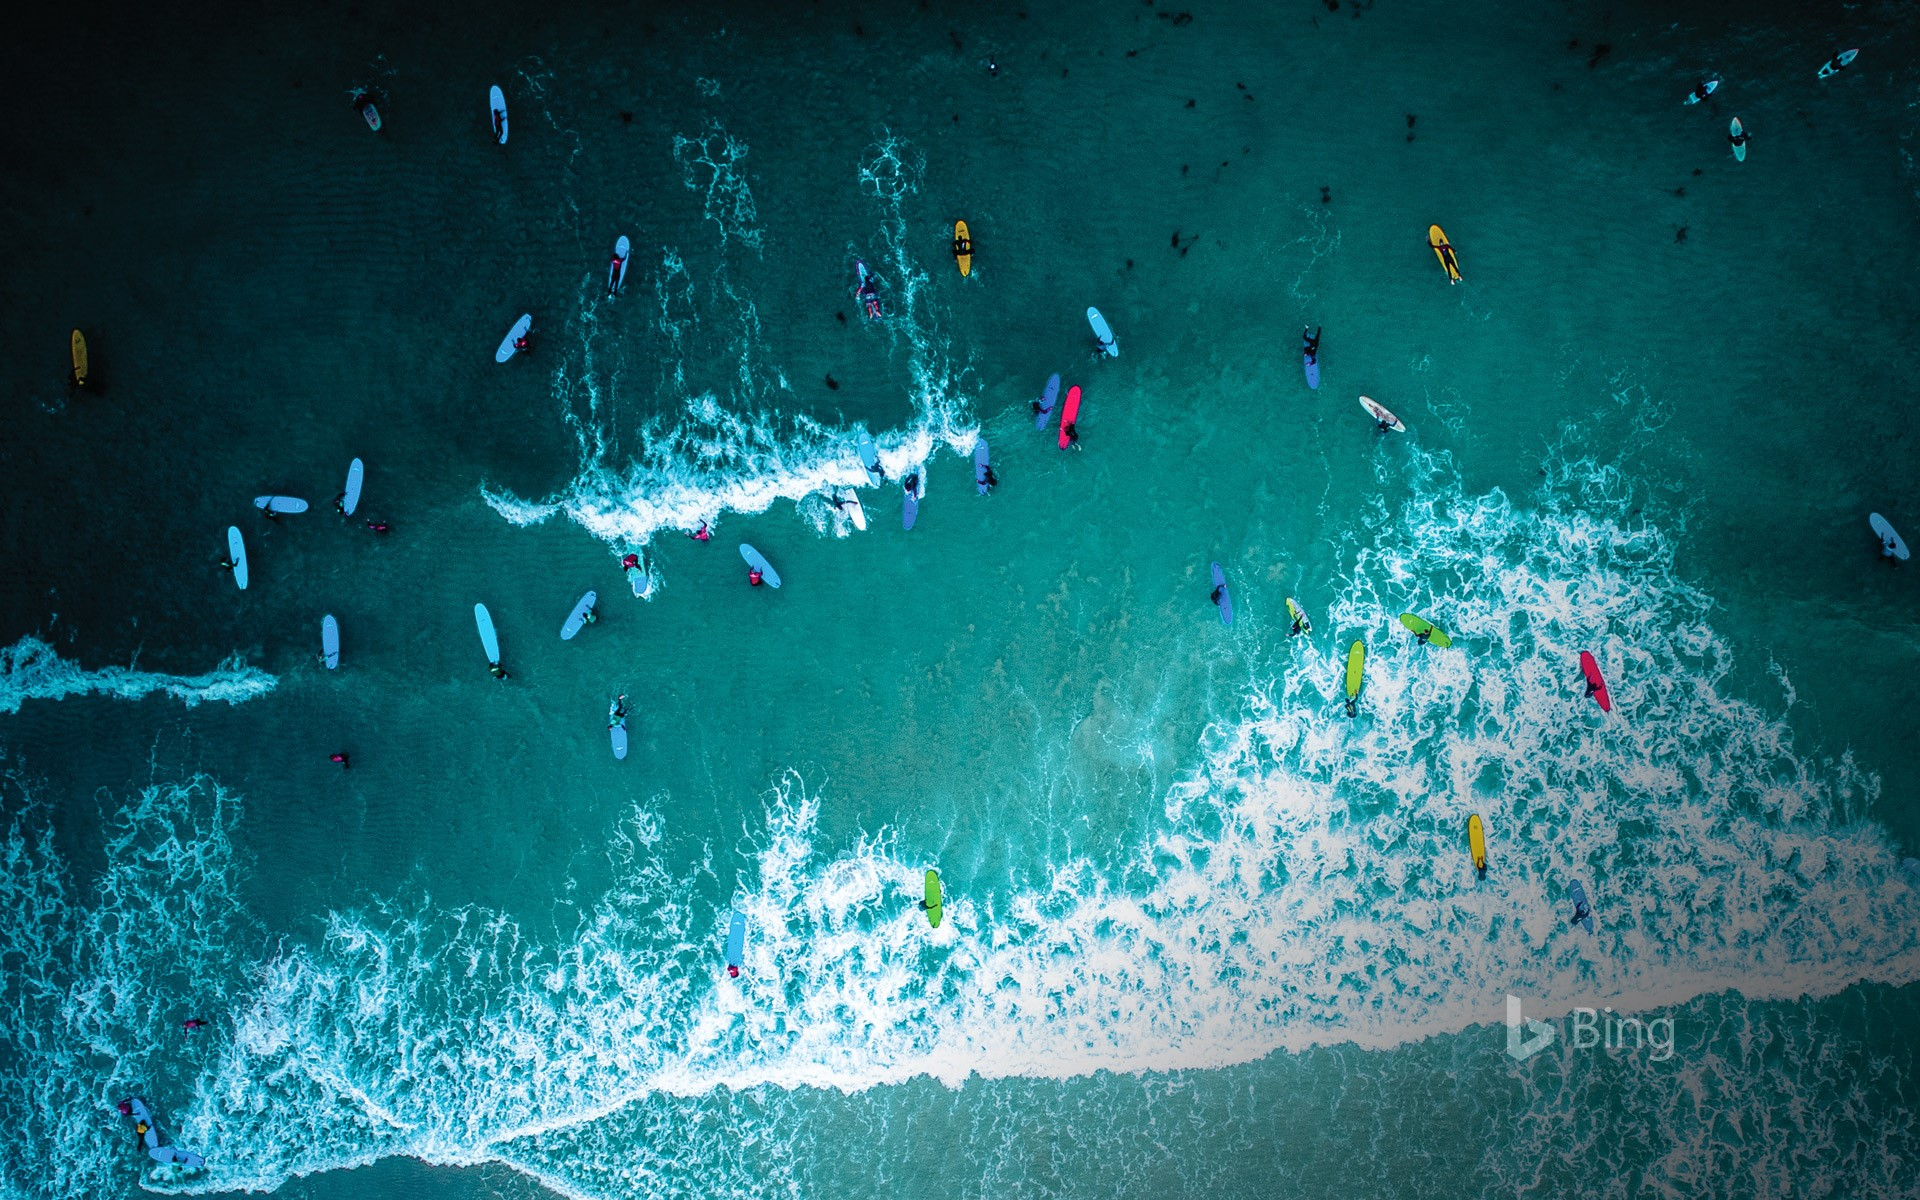 Aerial view of surfers in Cornwall for International Surfing Day